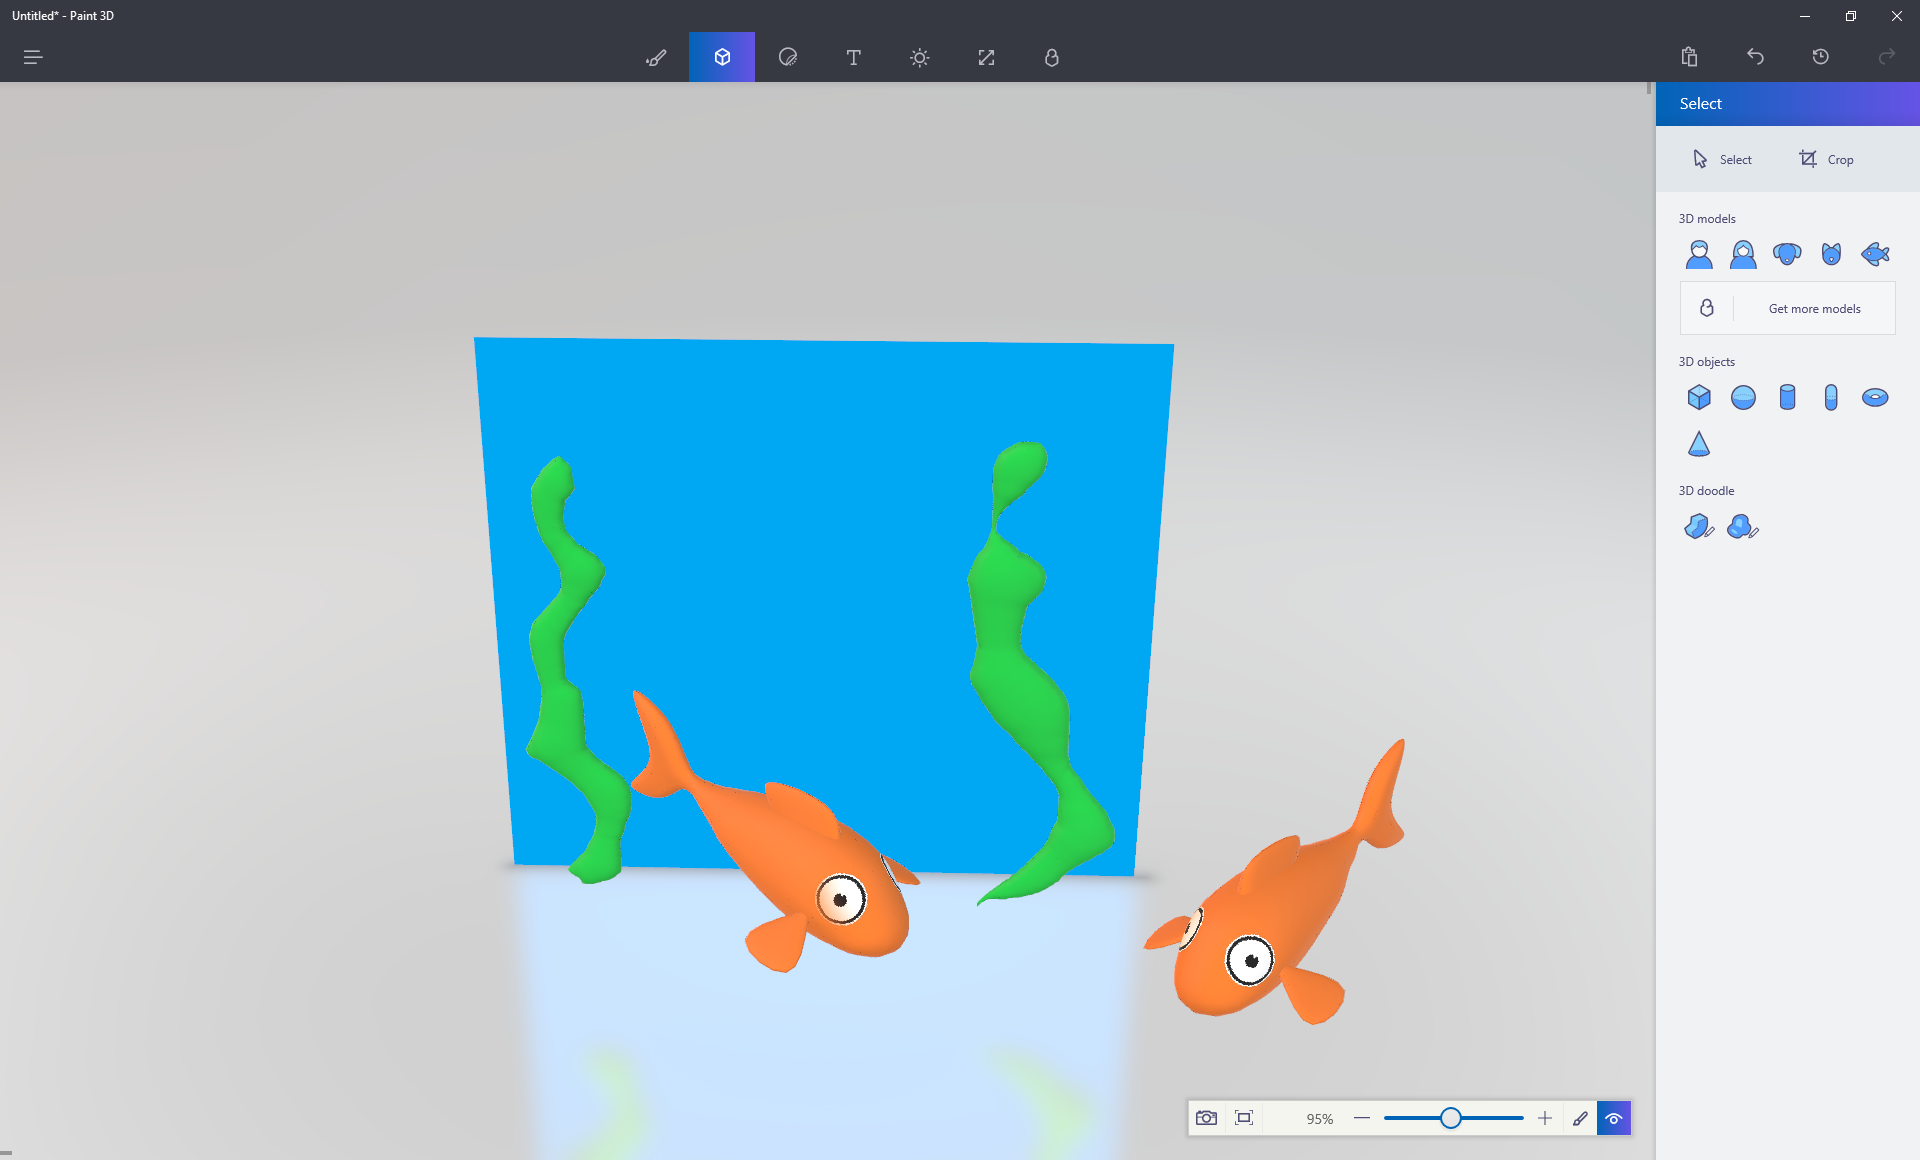 Paint 3D would probably be more valuable for someone with artistic talent.